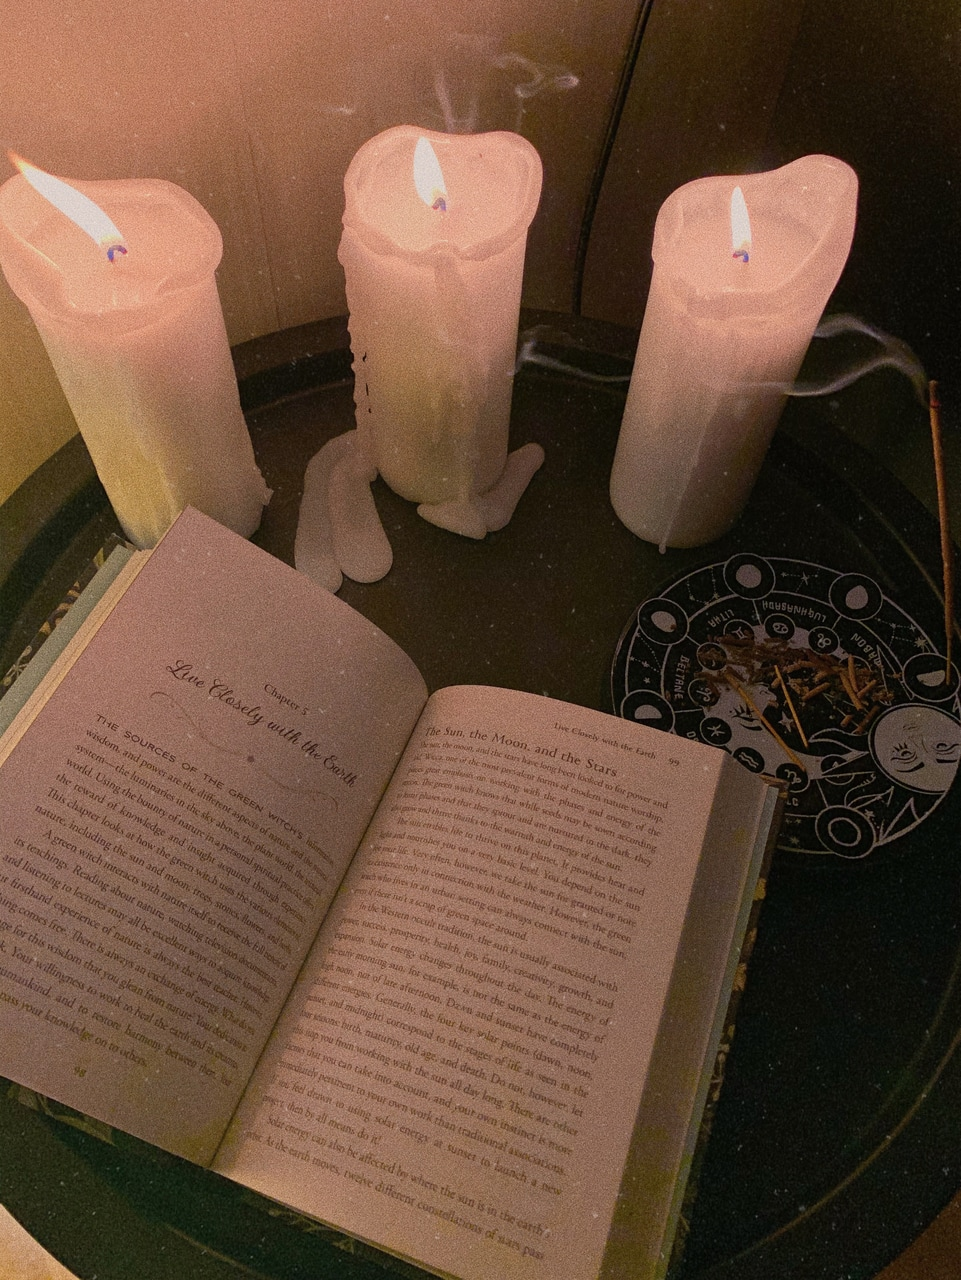 Cosy Evening With Some Candles Nag Champa Incense And The Green Witch Book